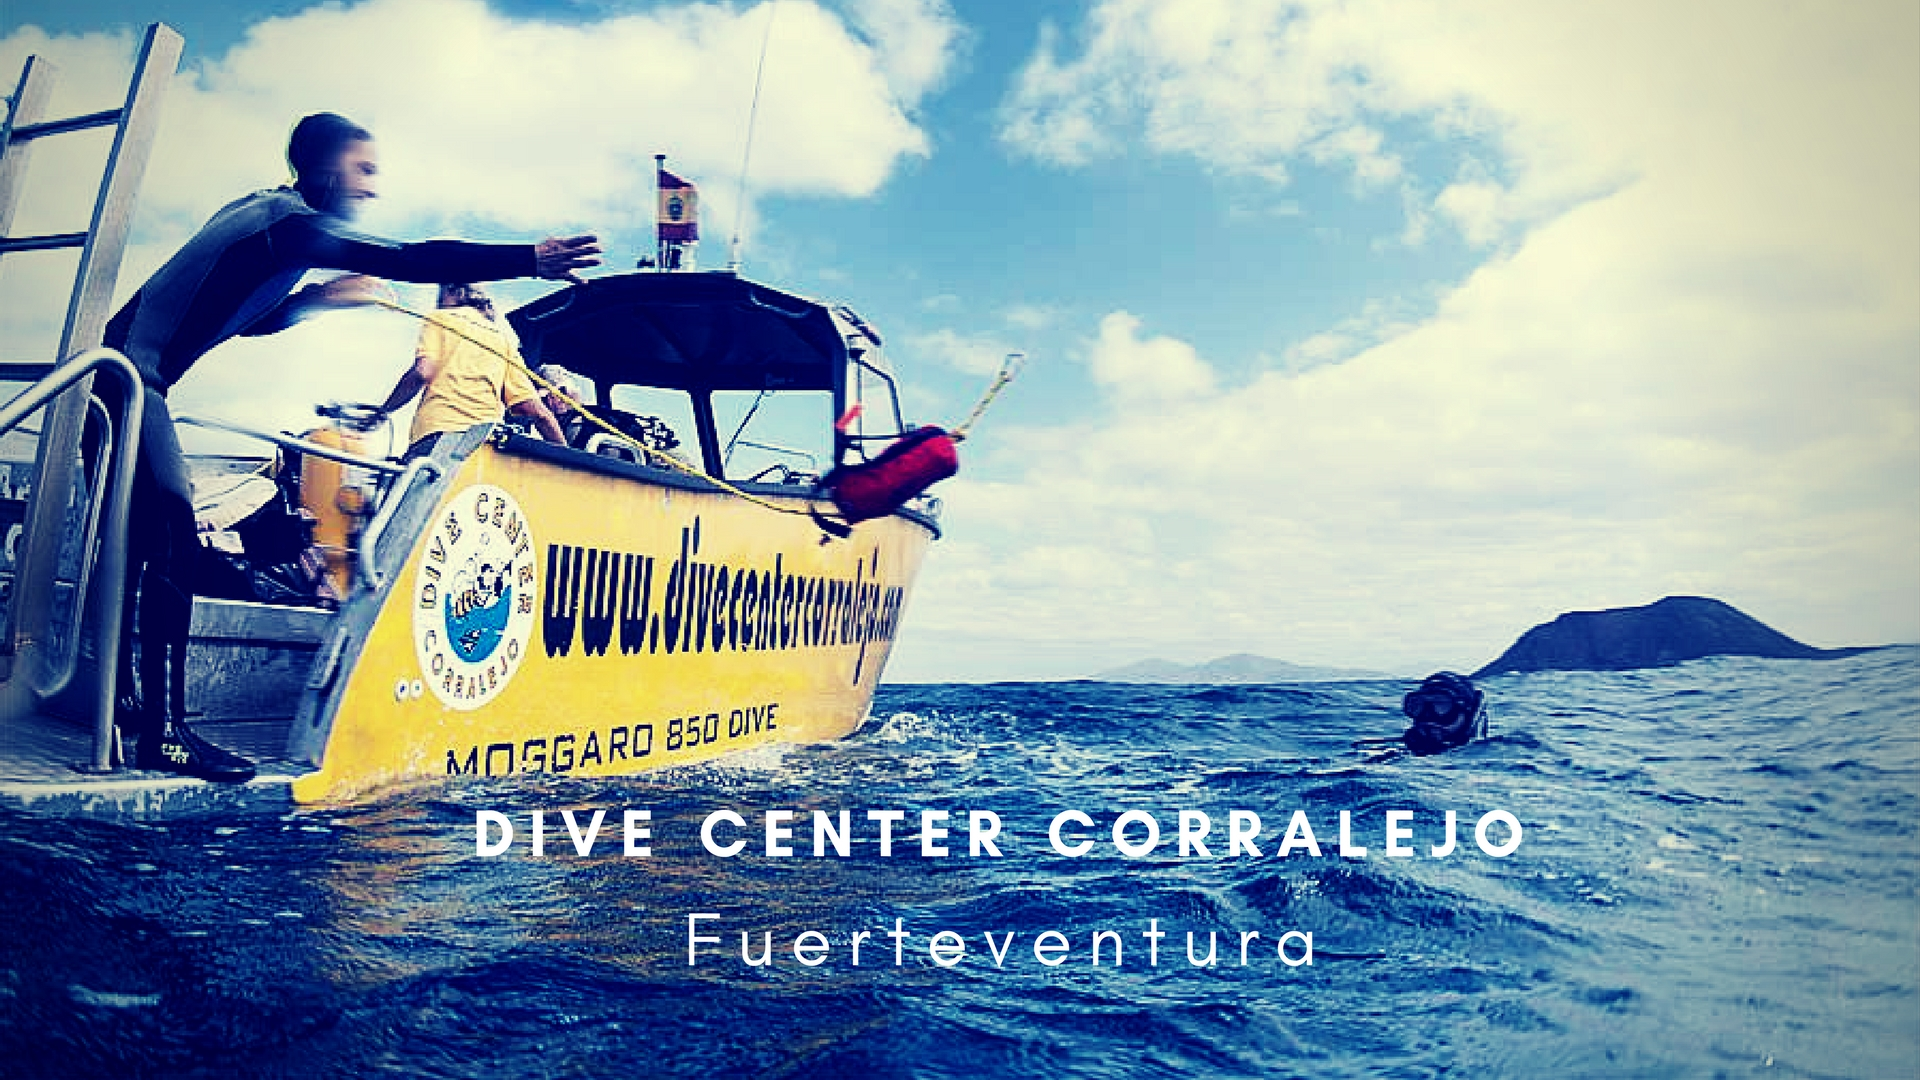 Dive Center Corralejo